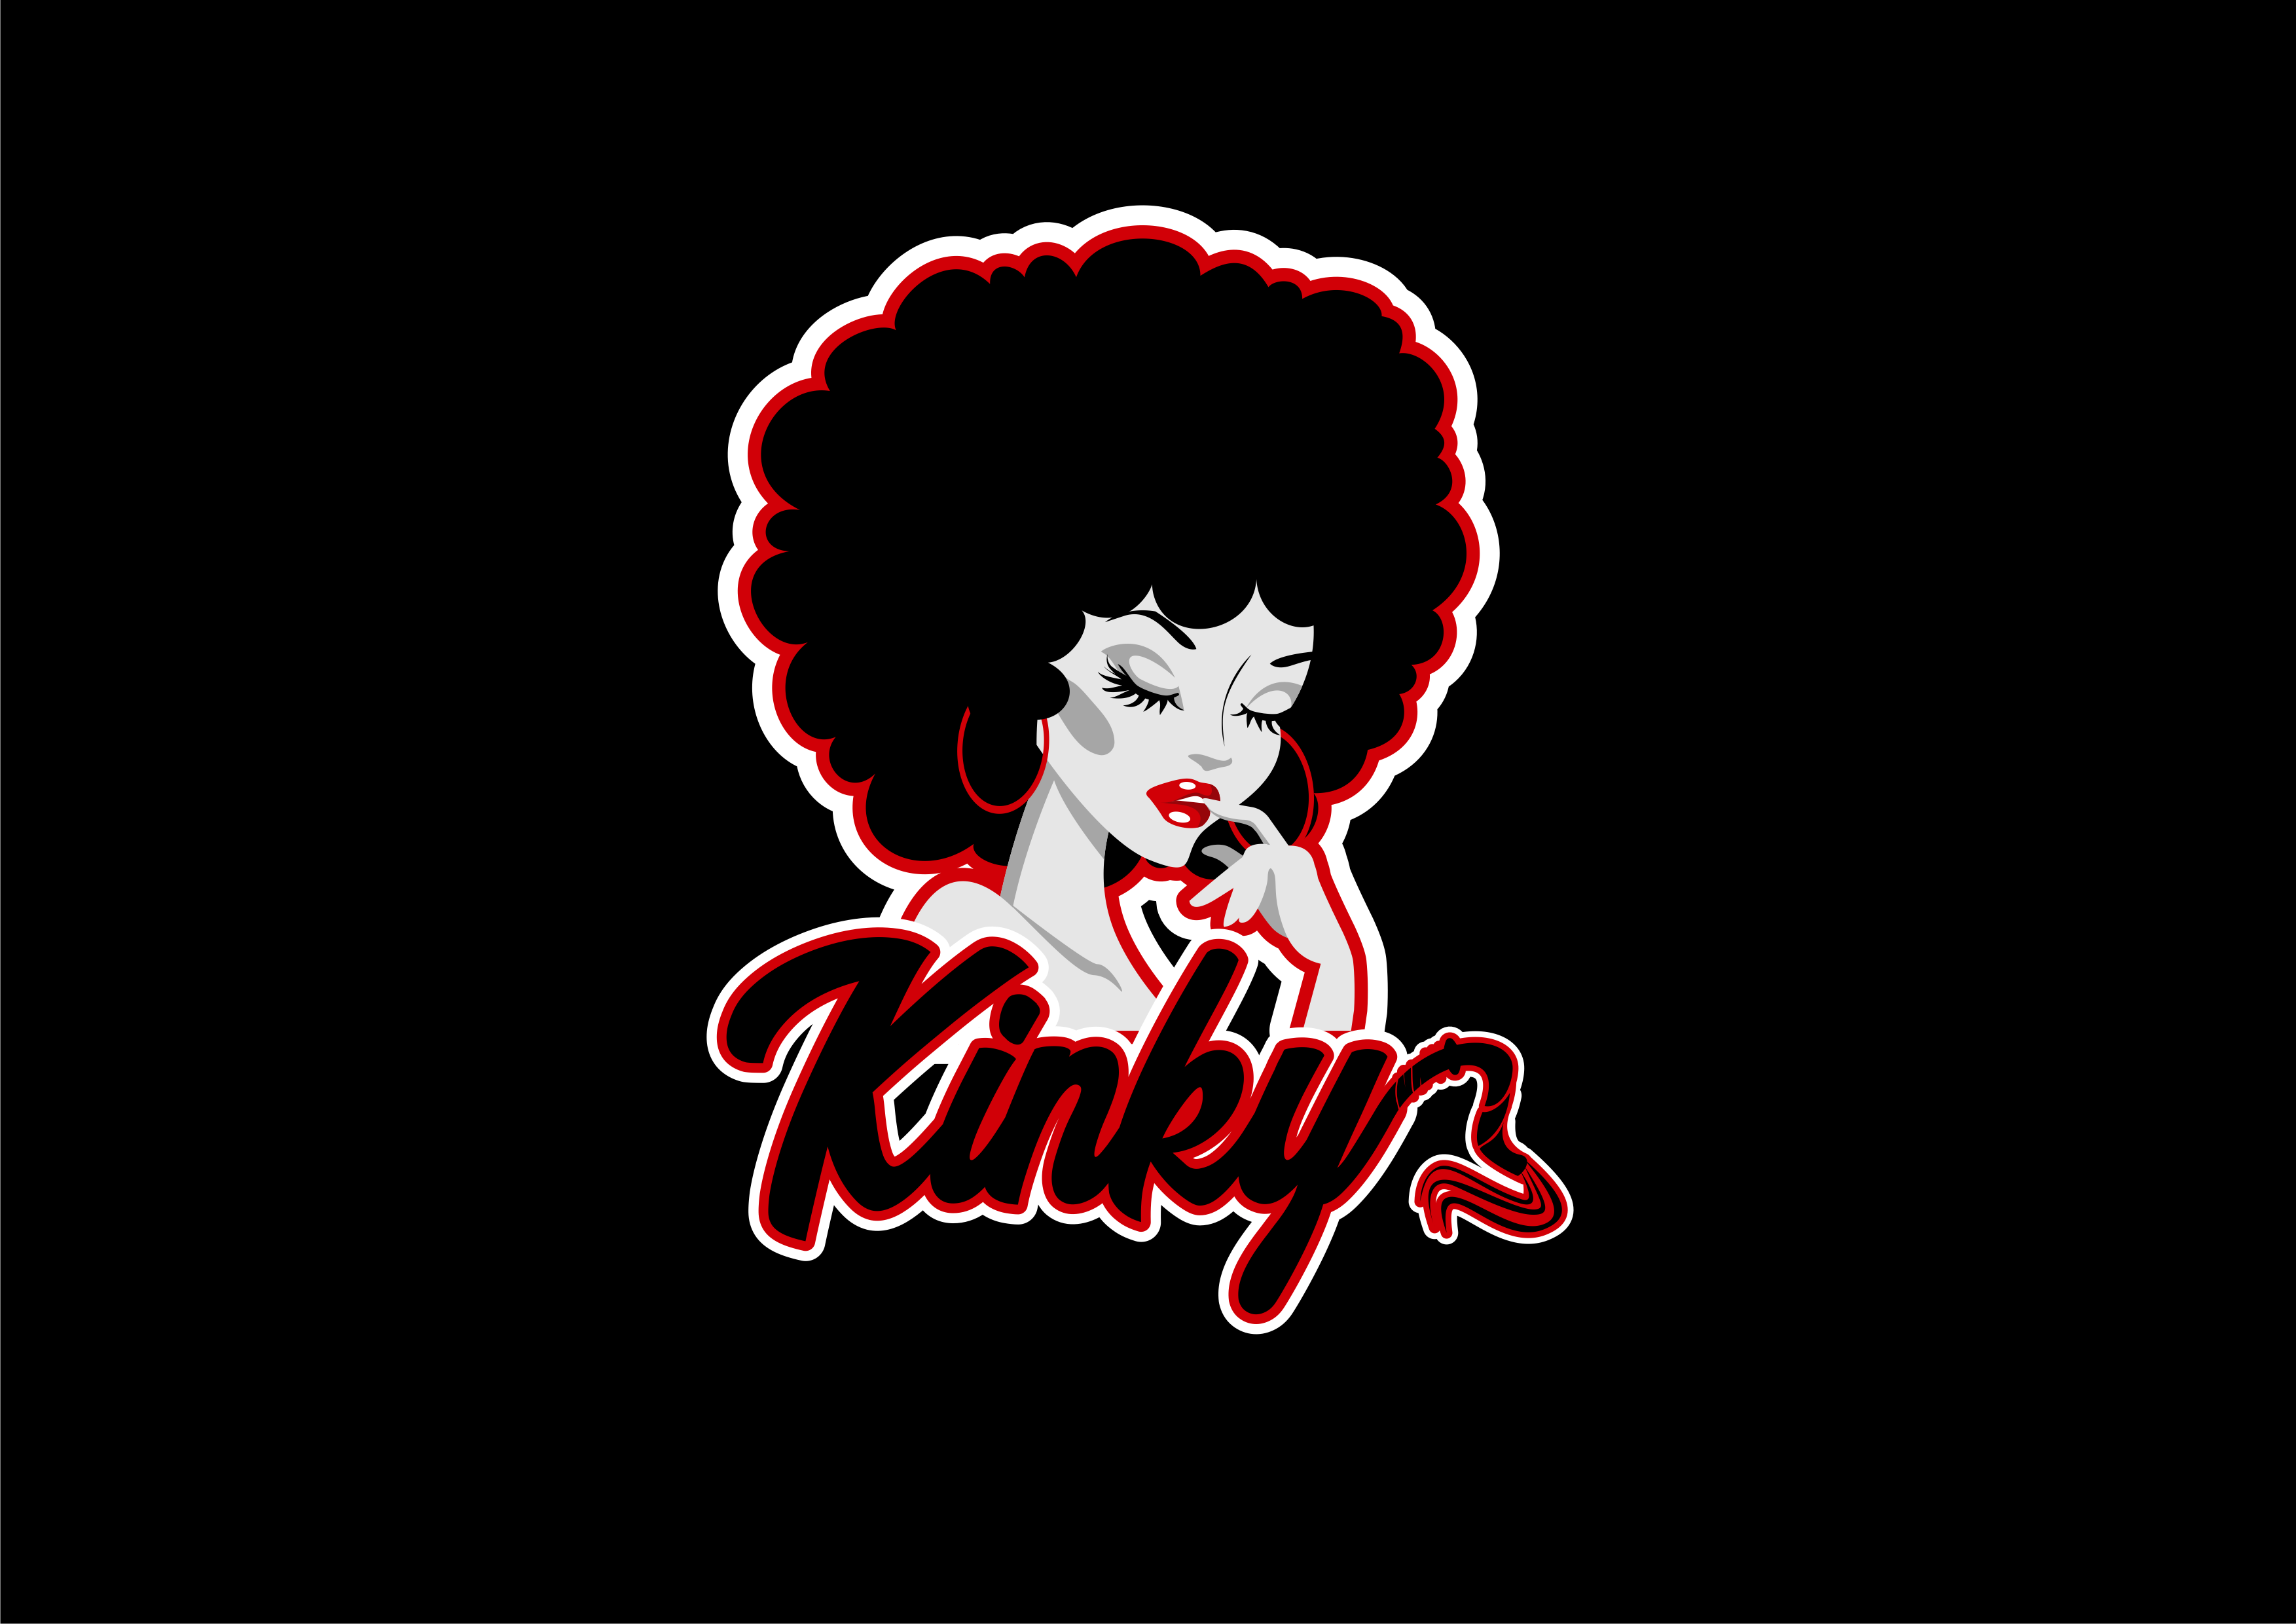 Double entendre logo of Kinky hair and Kinky sexuality!